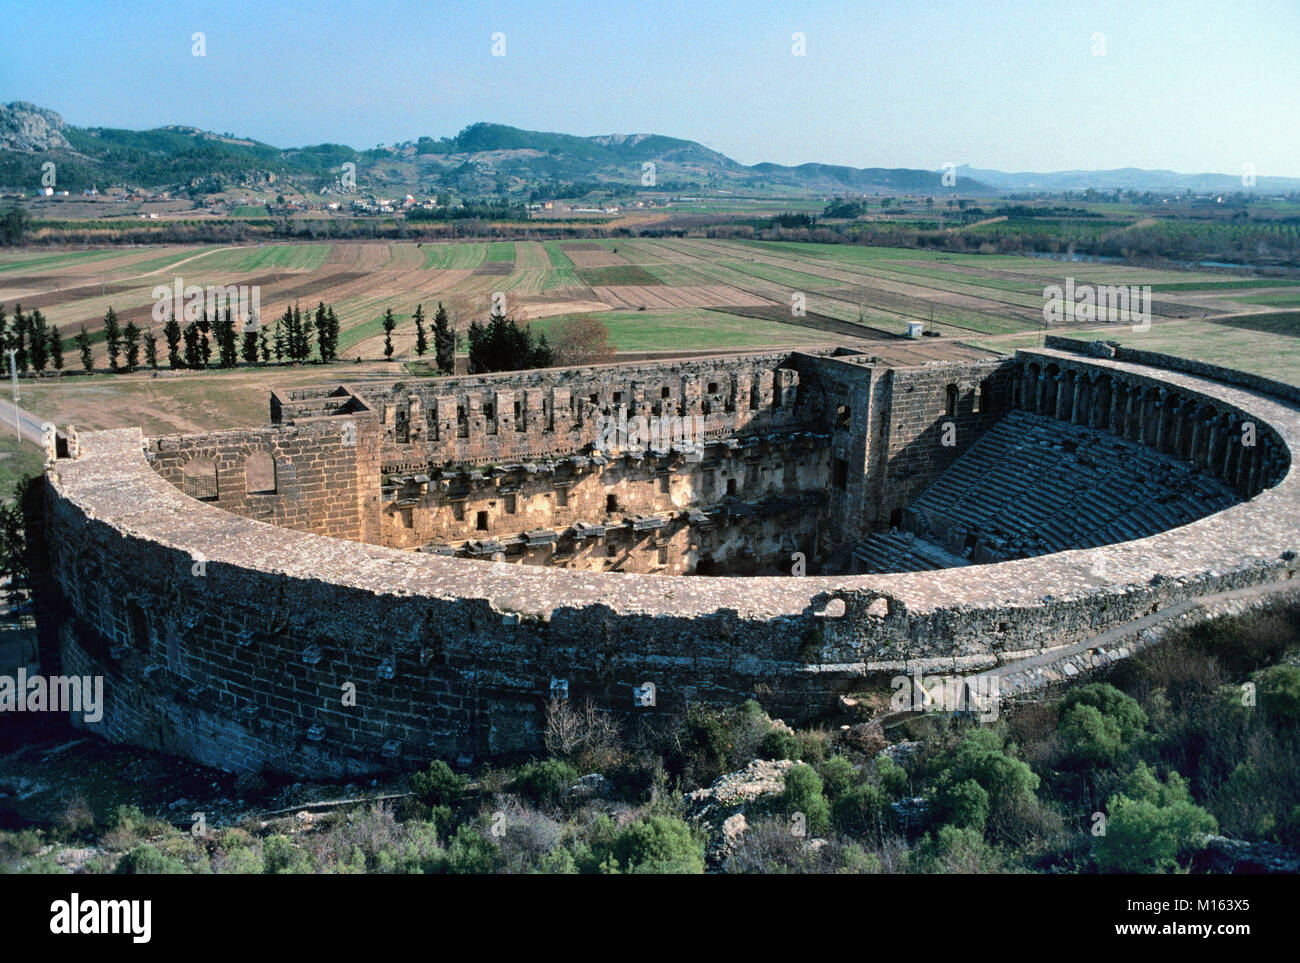 The Roman Theatre (c2nd) at Aspendos, built by the Greek architect Zenon in 155 AD, Antalya, Turkey. The building - Stock Image